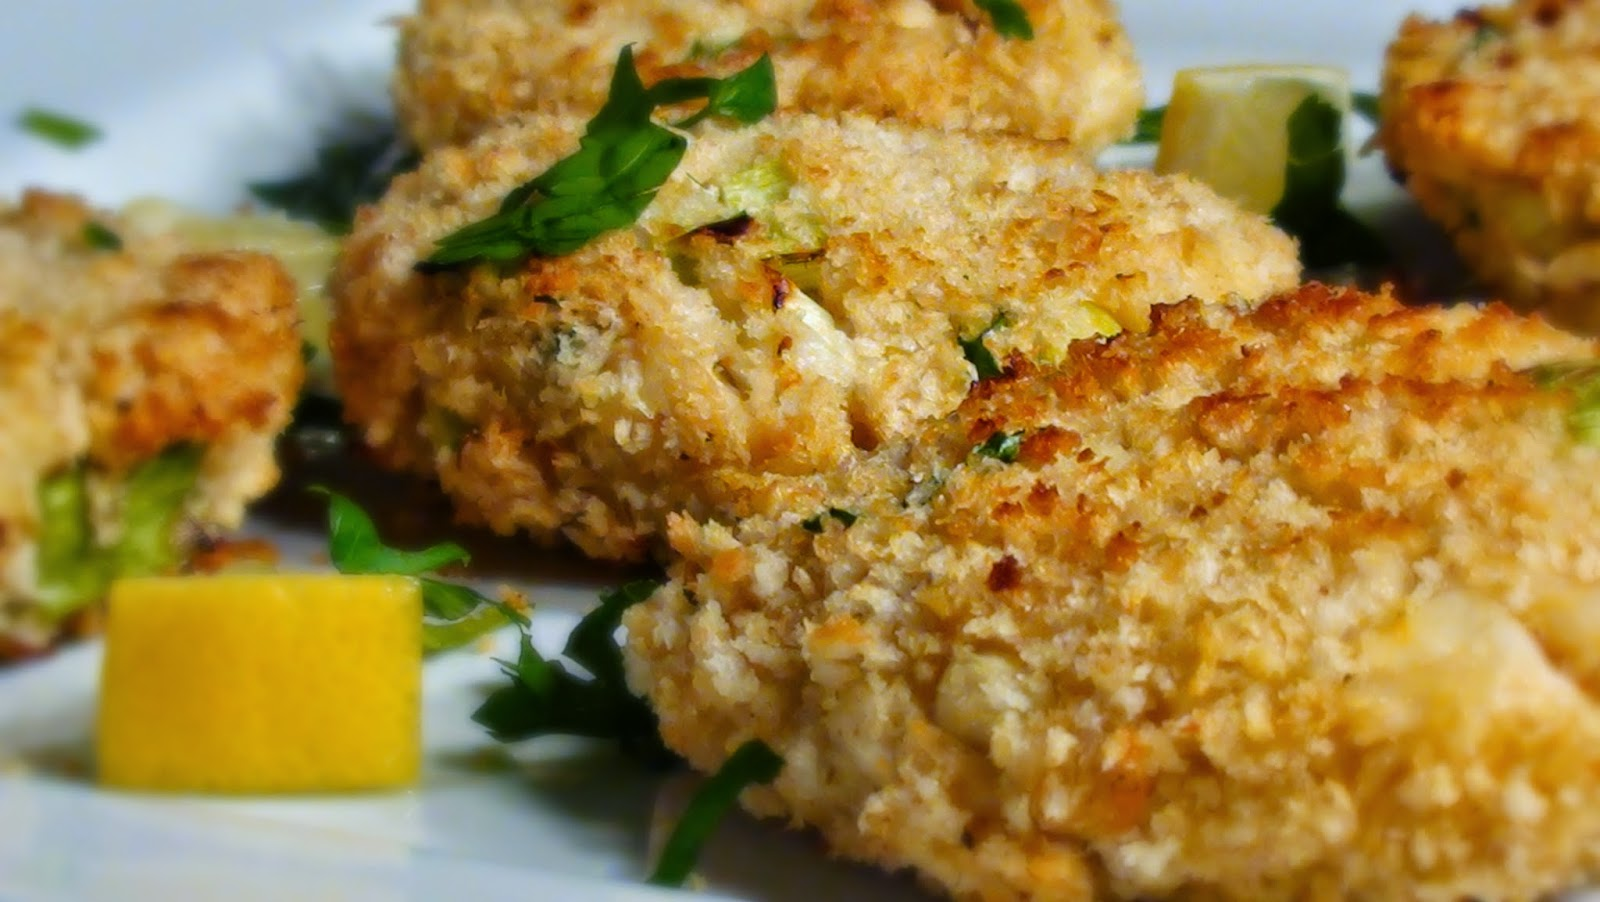 Baked fish with savory bread crumbs recipe dishmaps for Baked fish cakes